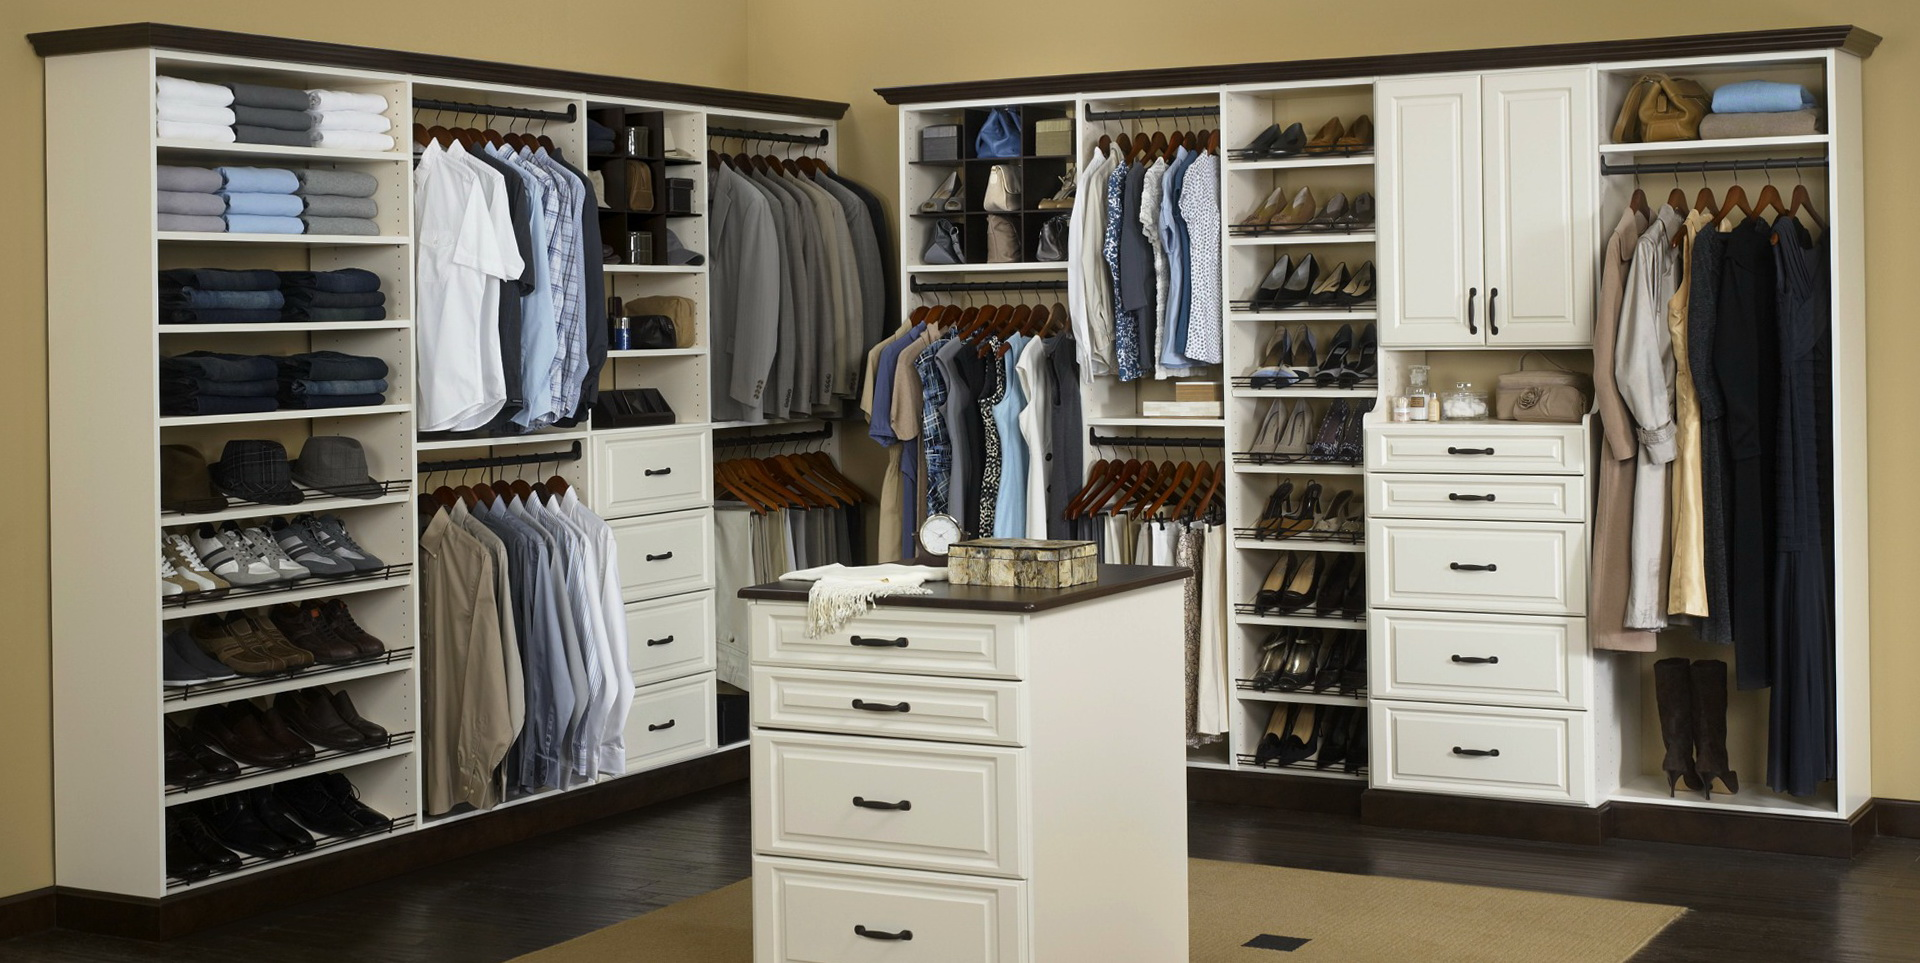 Rubbermaid closet storage home depot home design ideas Home depot closetmaid design